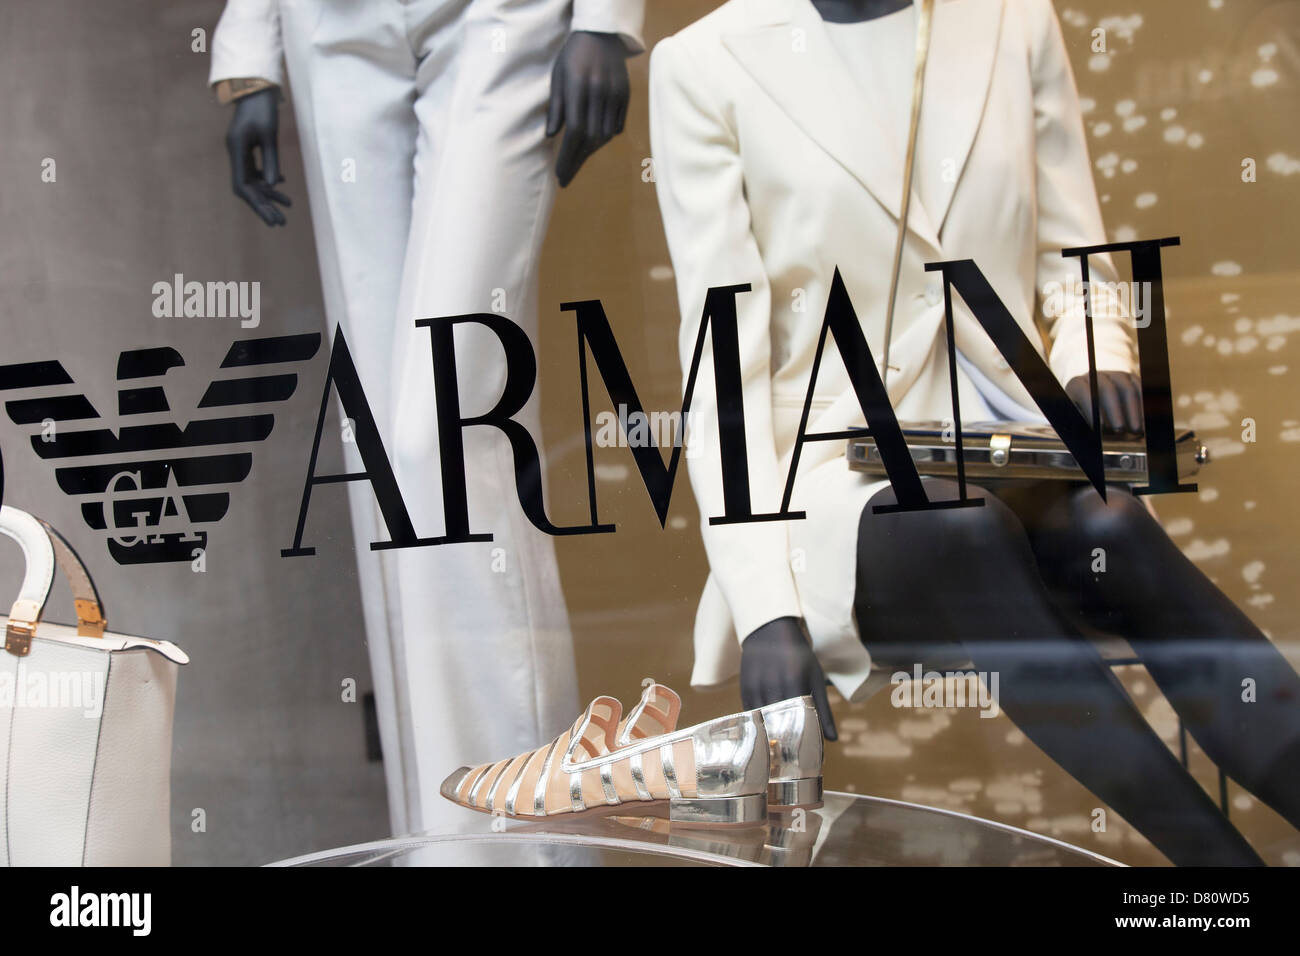 Sign for high end fashion and exclusive brand Emporio Armani. - Stock Image